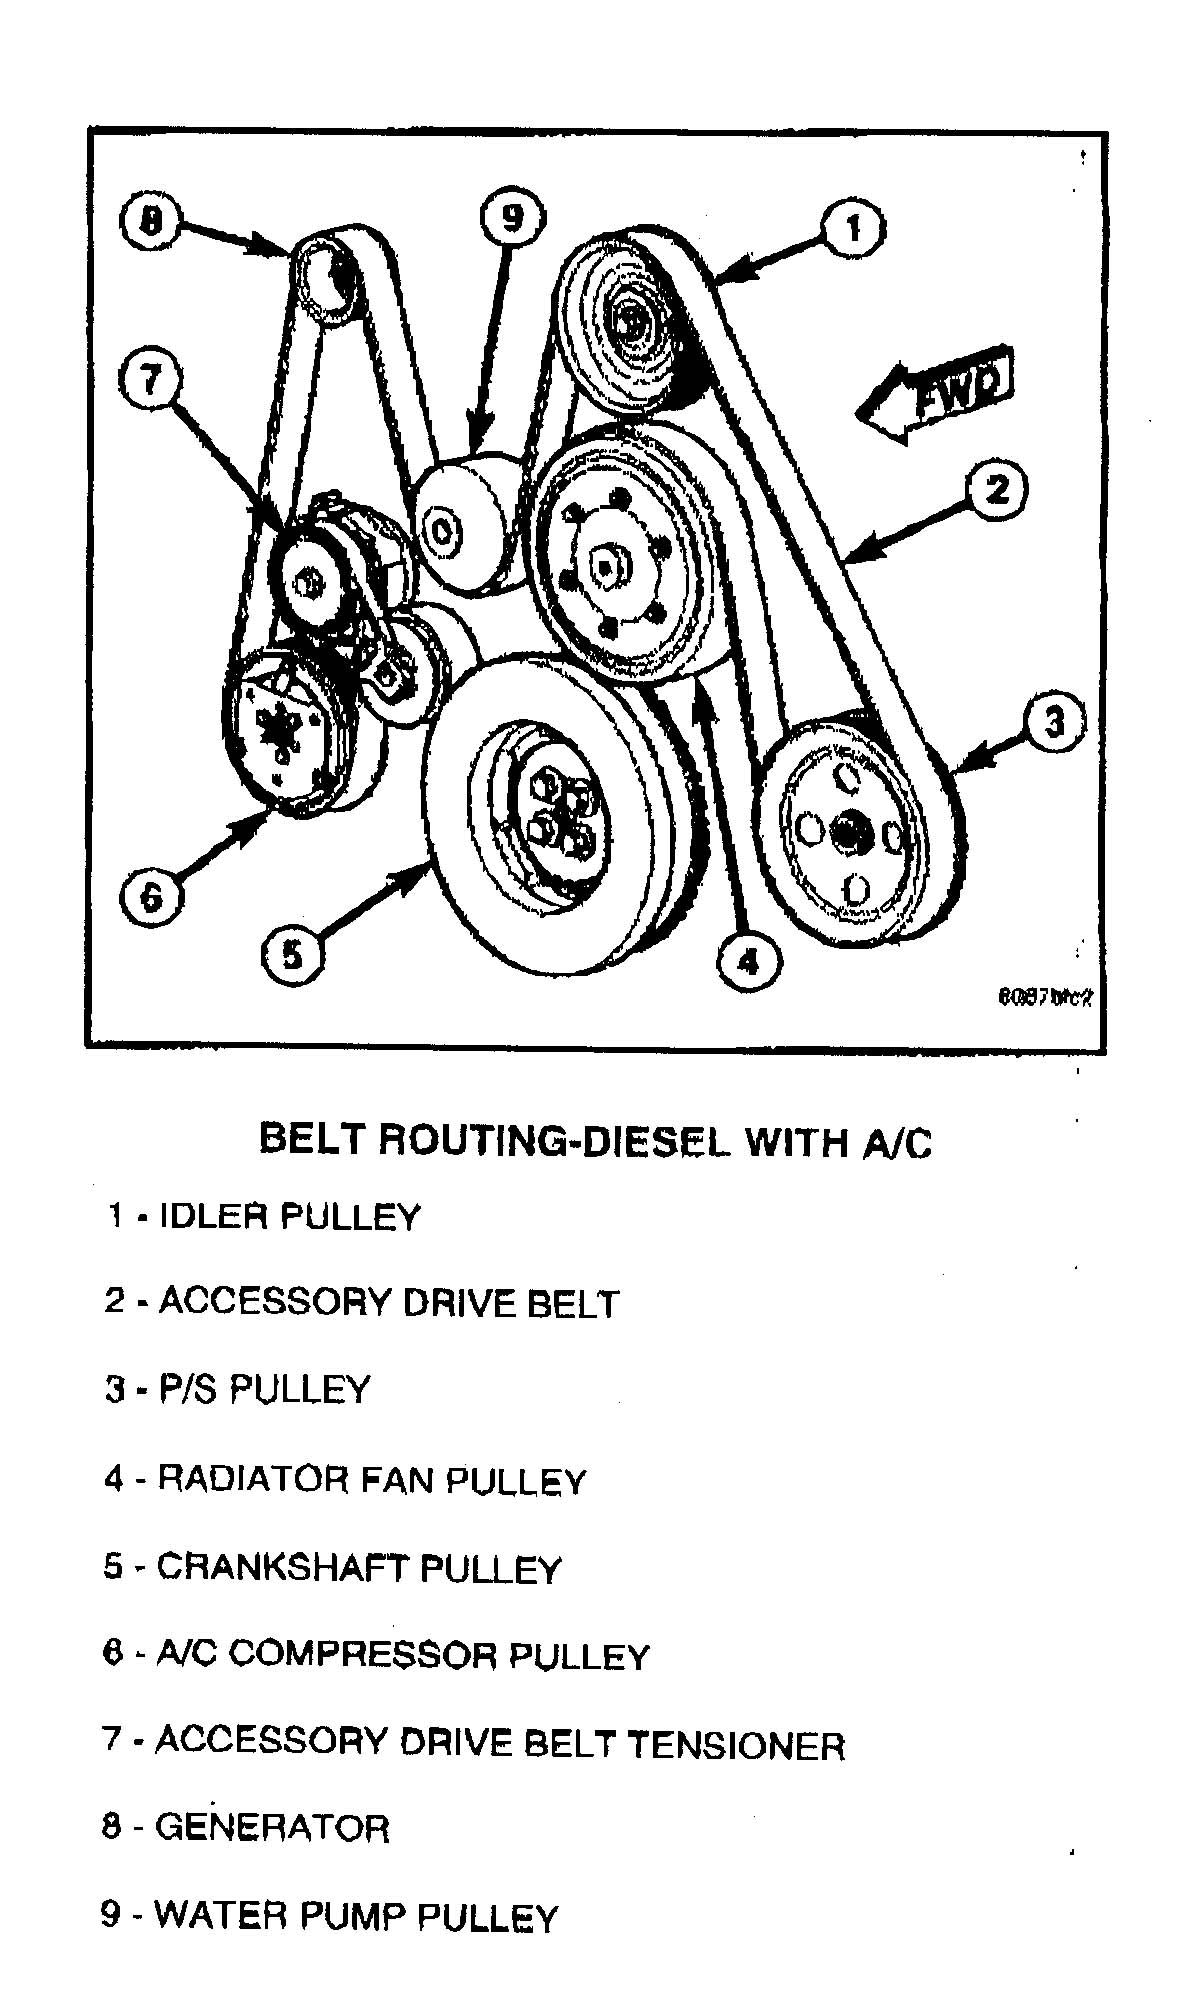 Dodge Ram 1500 Serpentine Belt Diagram Danfoss Vfd Wiring 6 7 Routing Diesel Truck